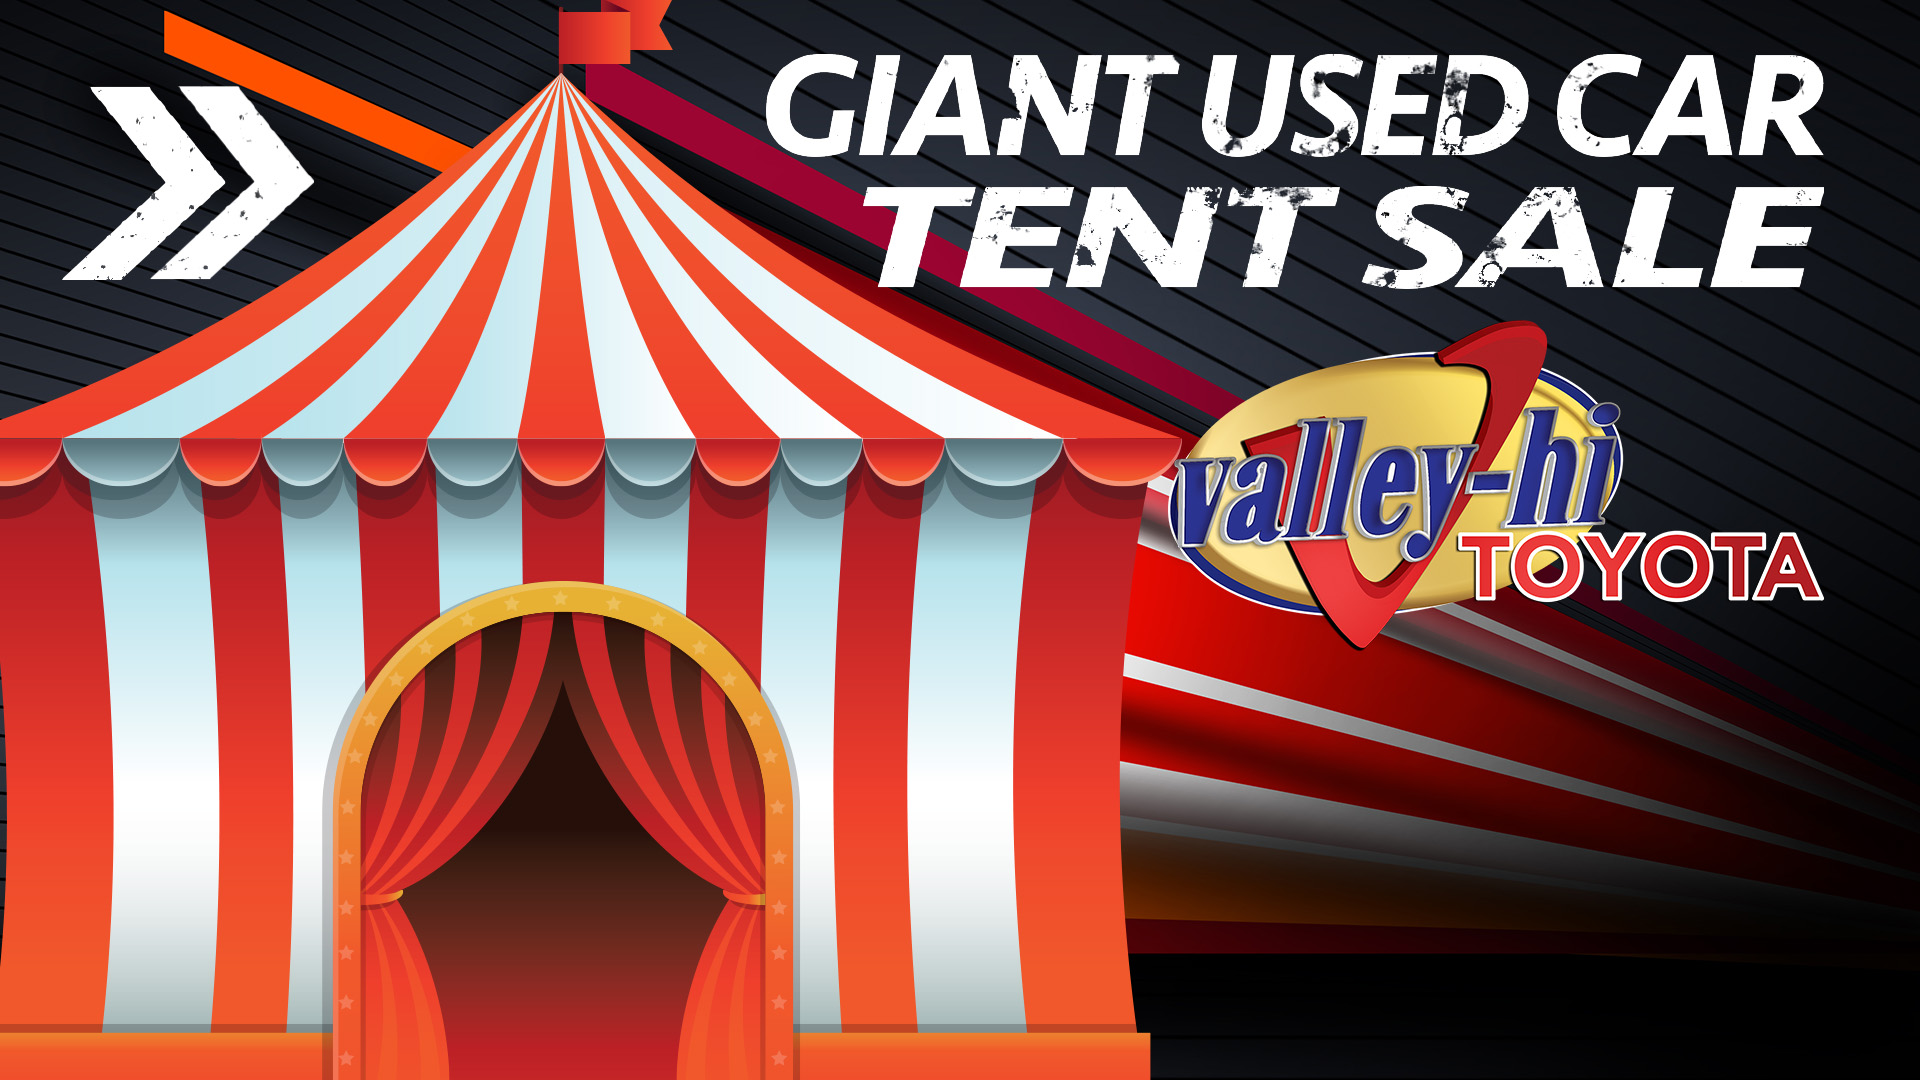 Valley Hi Toyota Tent Sale